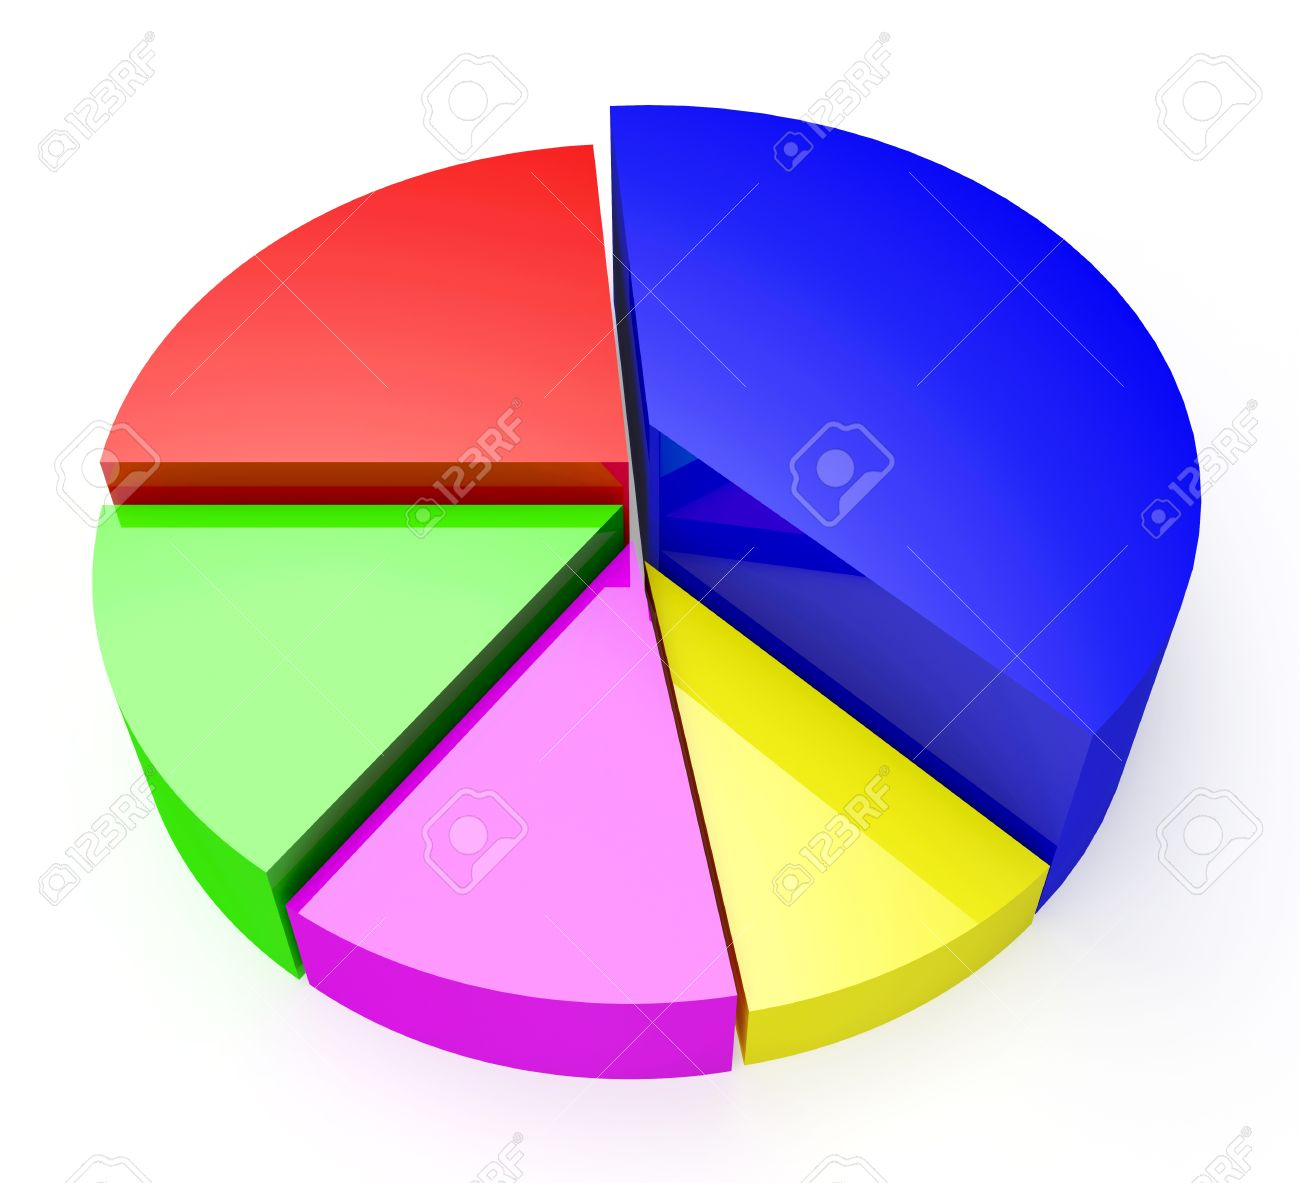 Pie chart jquery plugin choice image free any chart examples pie chart jquery plugin choice image free any chart examples pie chart jquery plugin image collections nvjuhfo Images